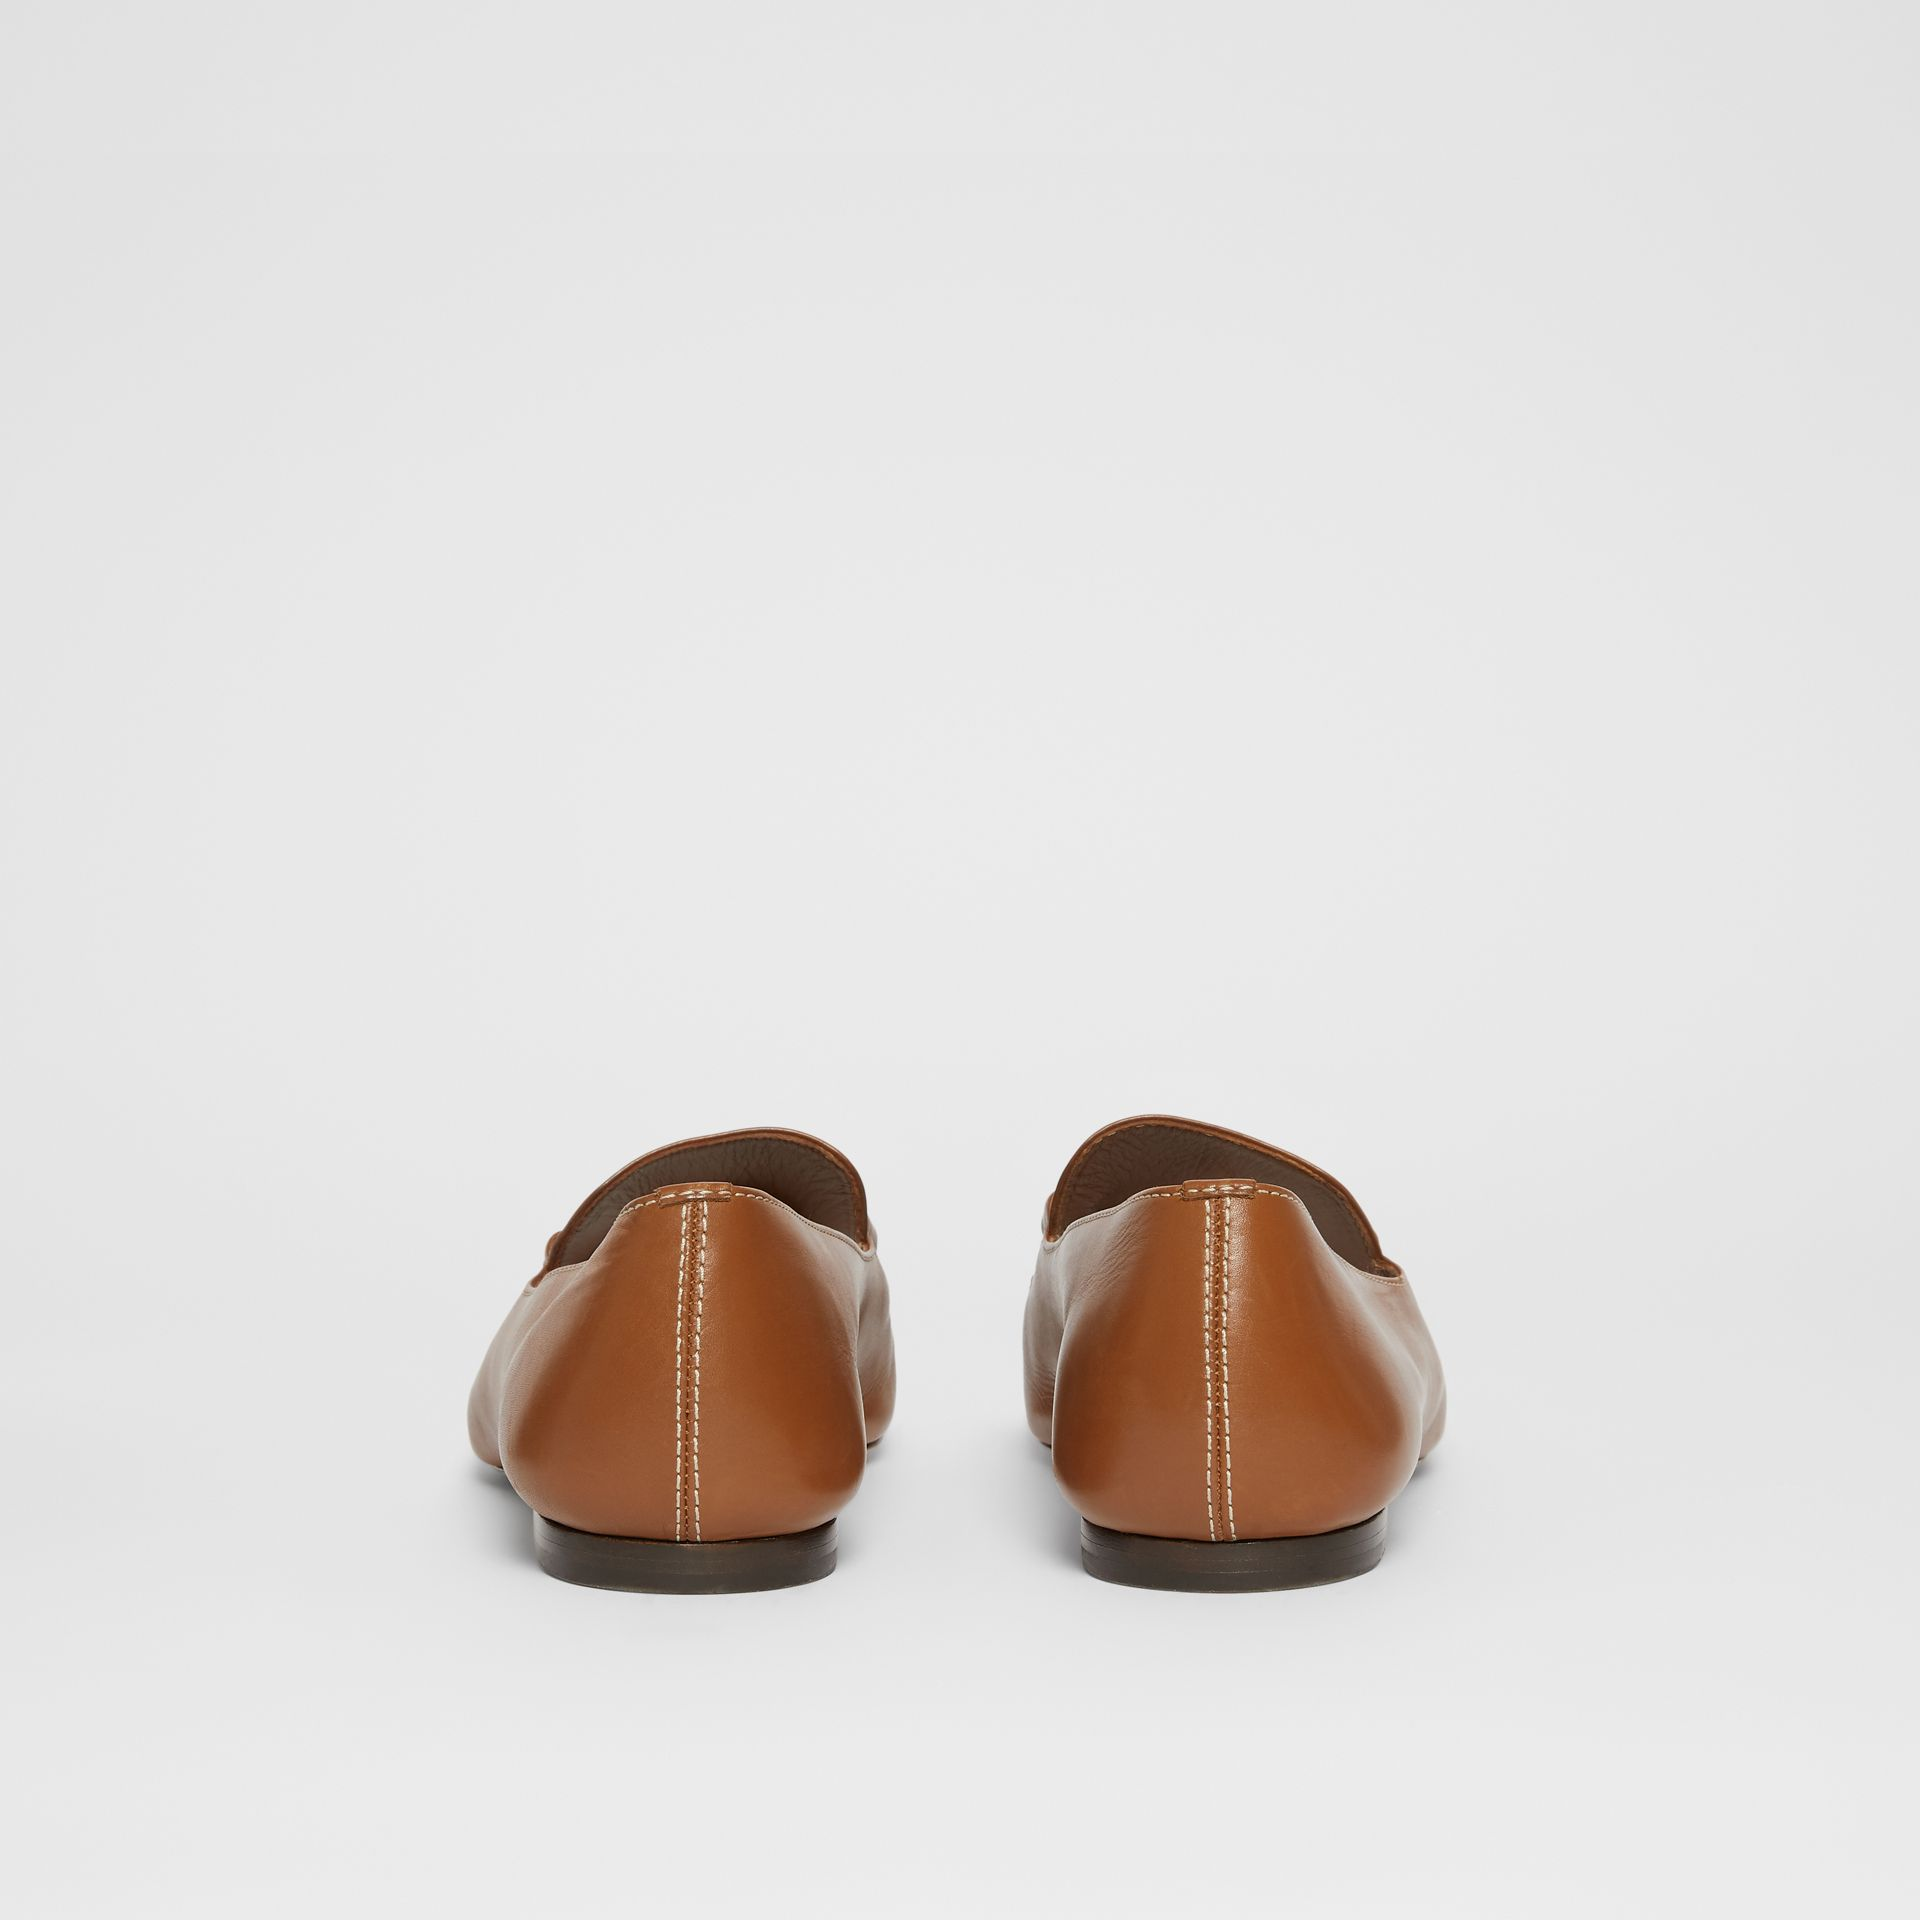 Monogram Motif Leather Loafers in Tan - Women | Burberry - gallery image 4